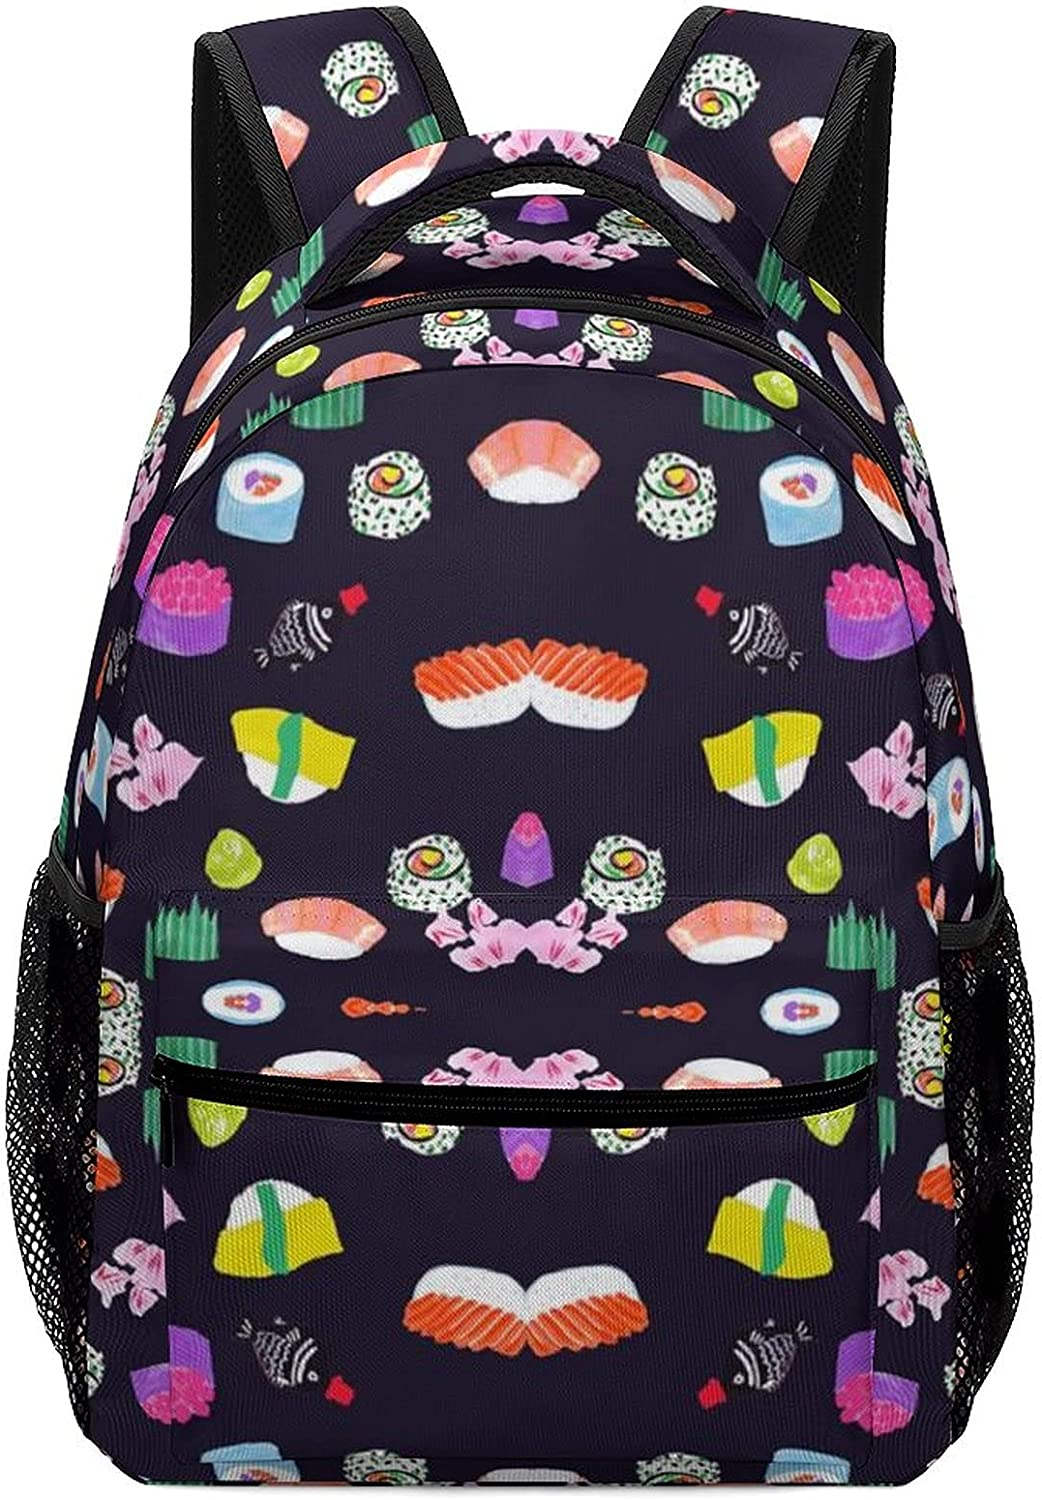 Backpacks Sackpack Daypack Classic Courier shipping free Bookbag Lightweight Cheap mail order shopping Computer